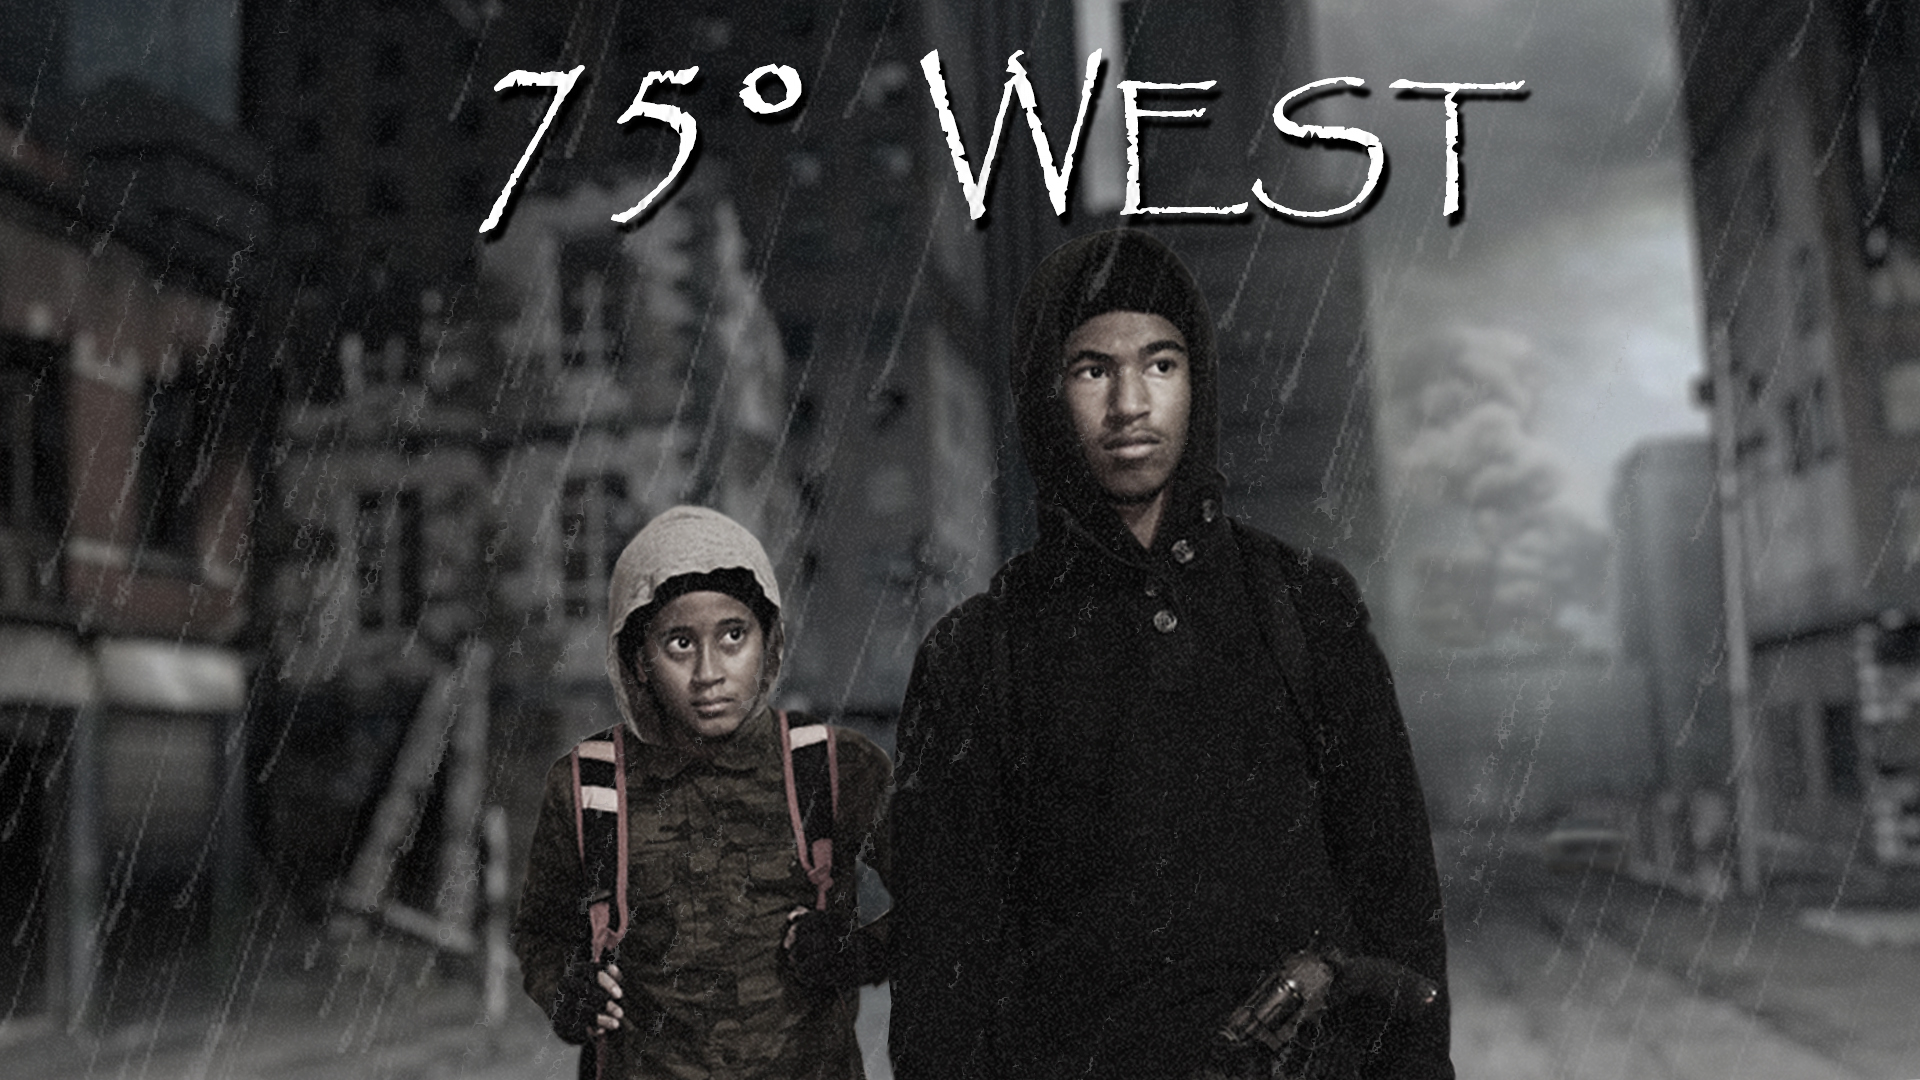 75 Degrees West